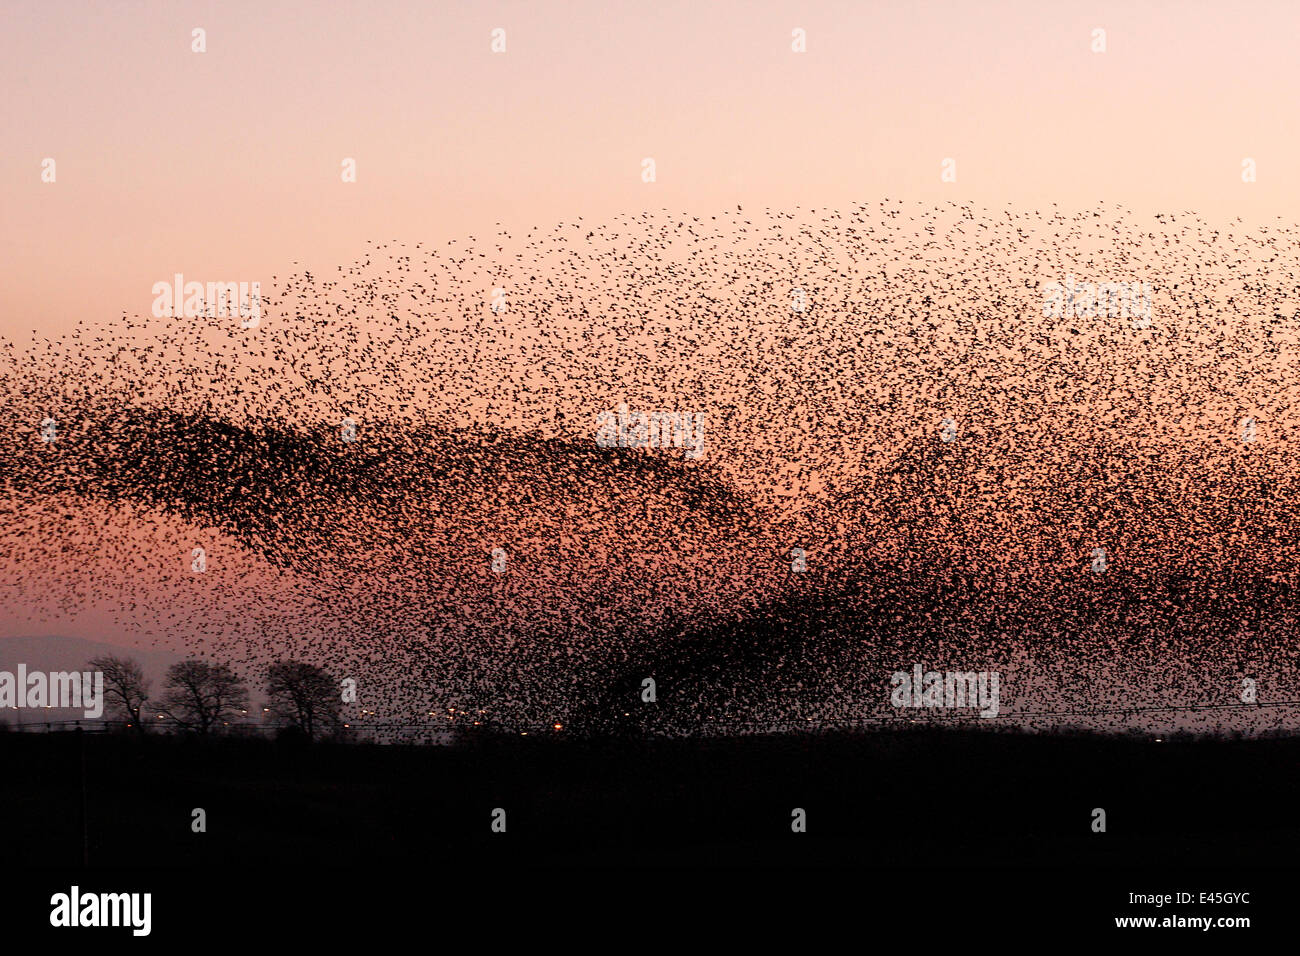 Large flocks of Common starlings (Sturnus vulgaris) going to roost at dusk, Gretna Green, Scotland - Stock Image